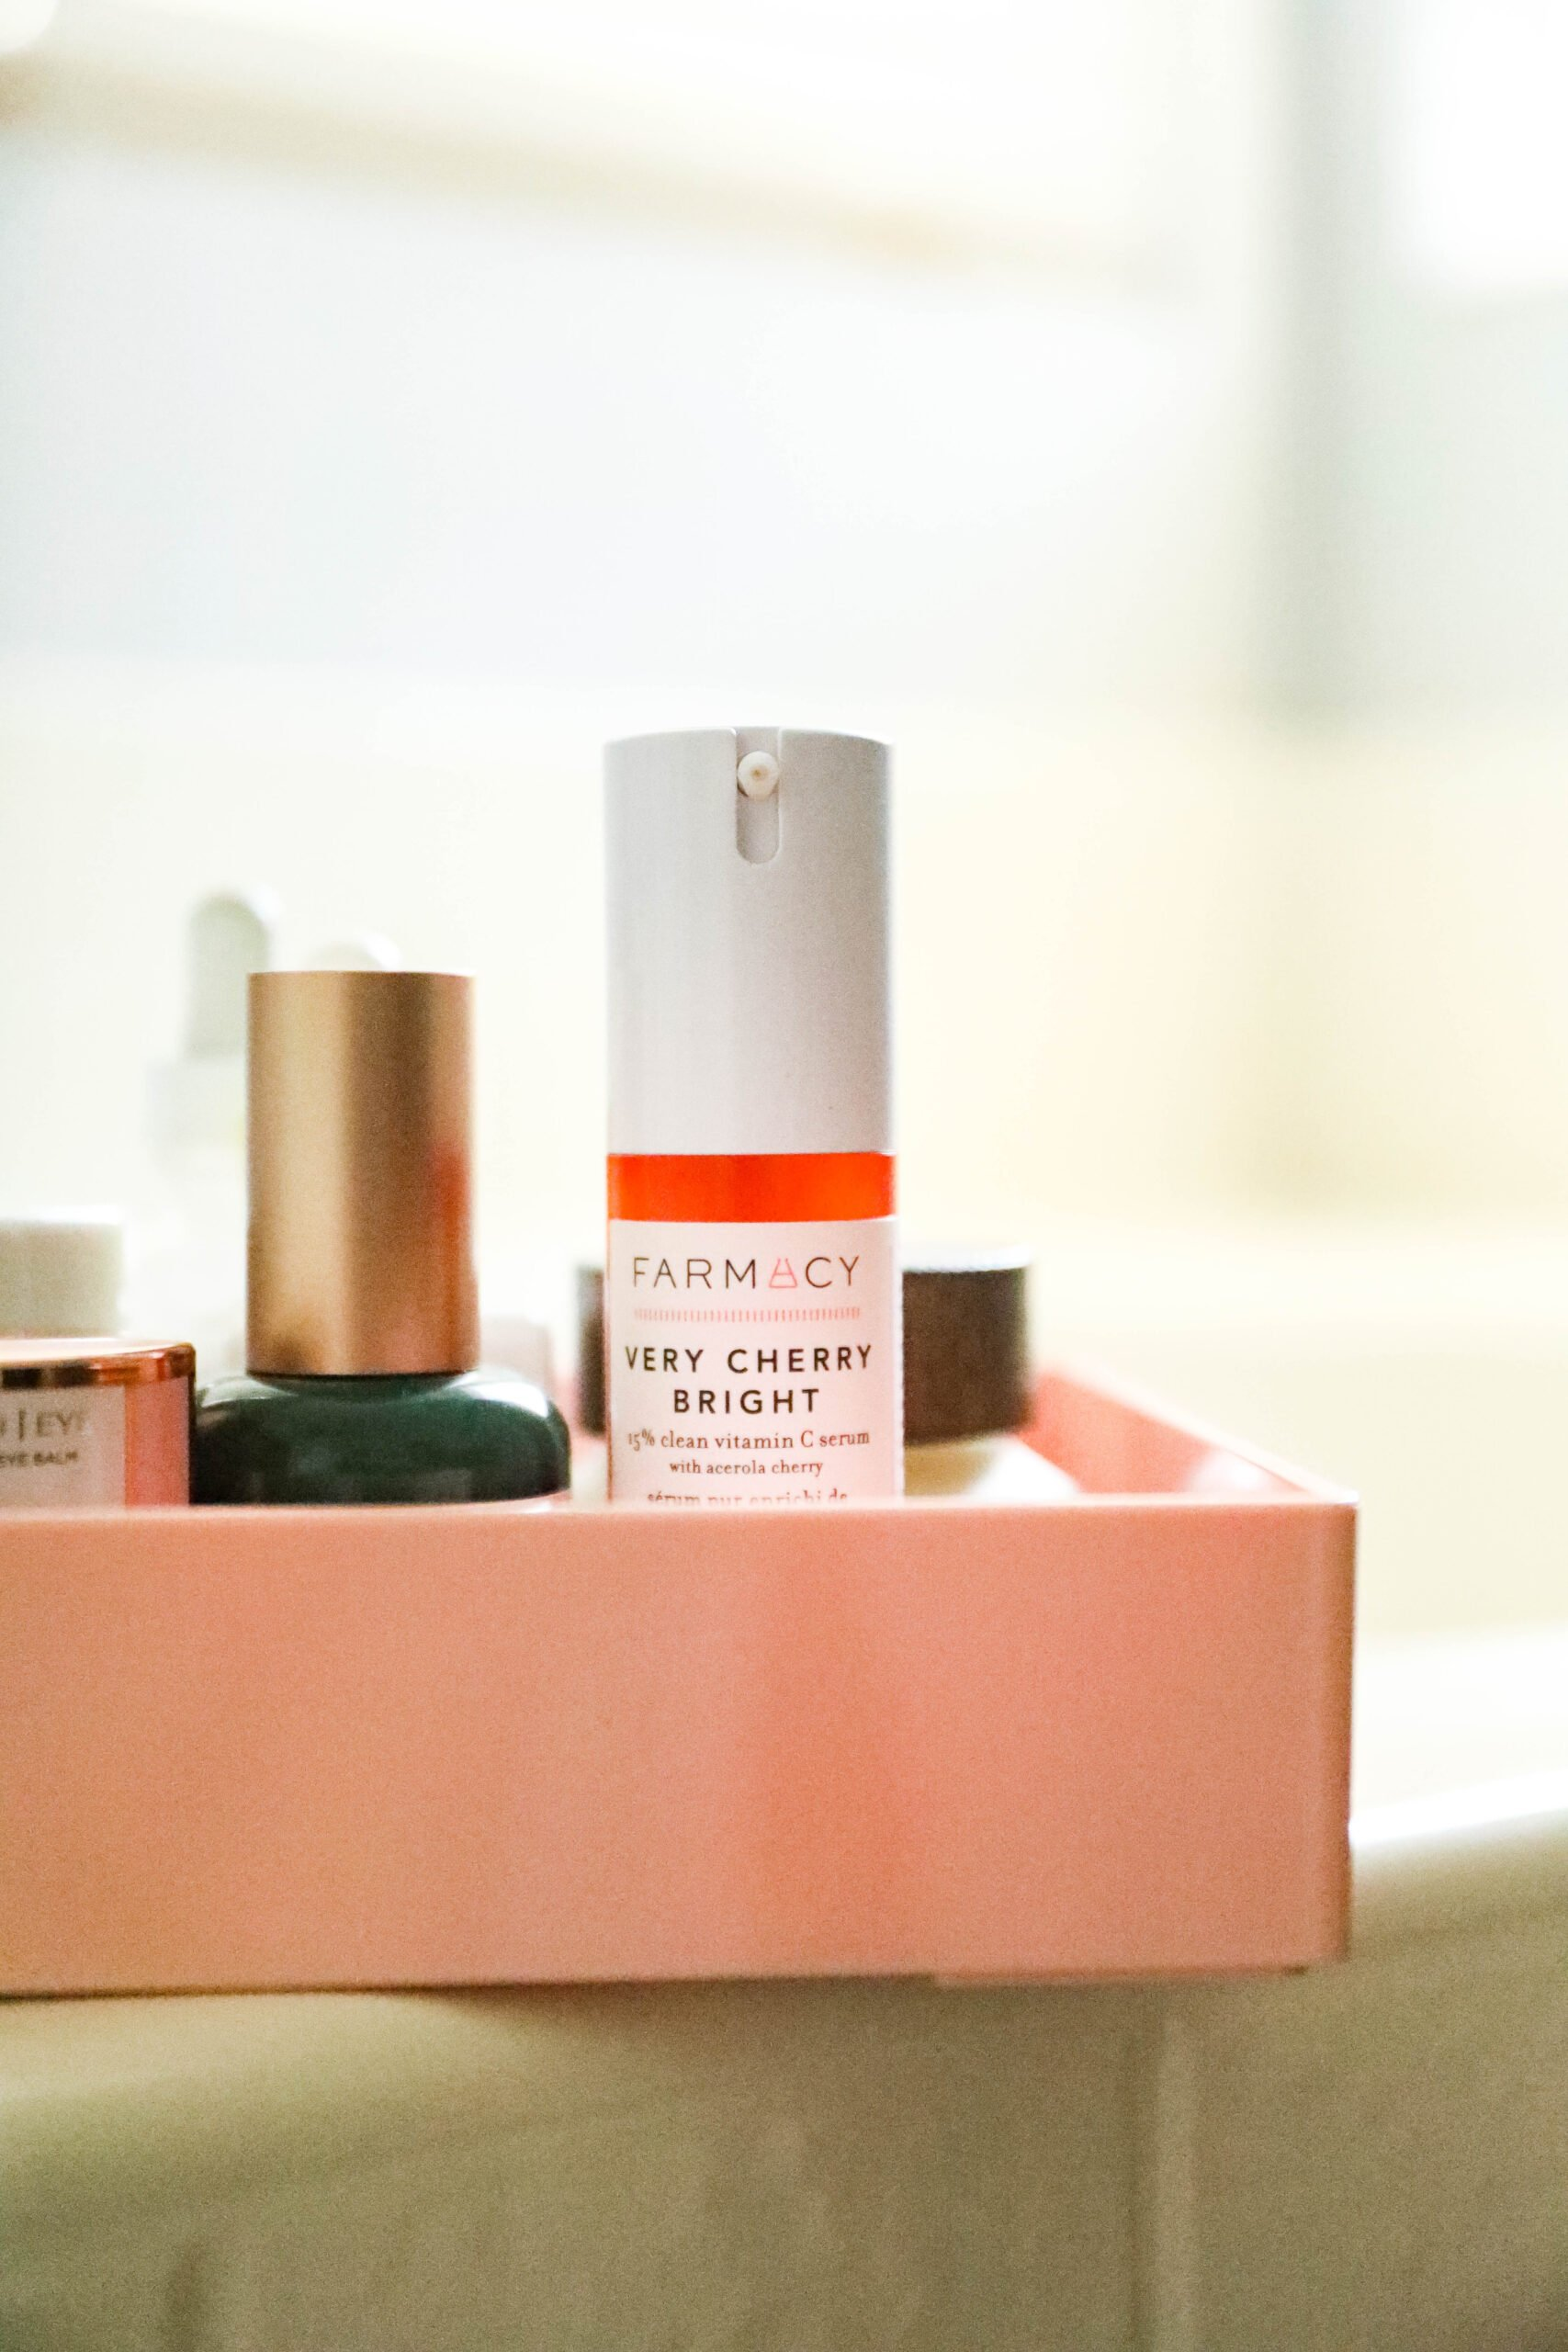 Looking to set up a great autumn skincare routine? This is my own current skincare regime......and so far, I'm absolutely loving it!